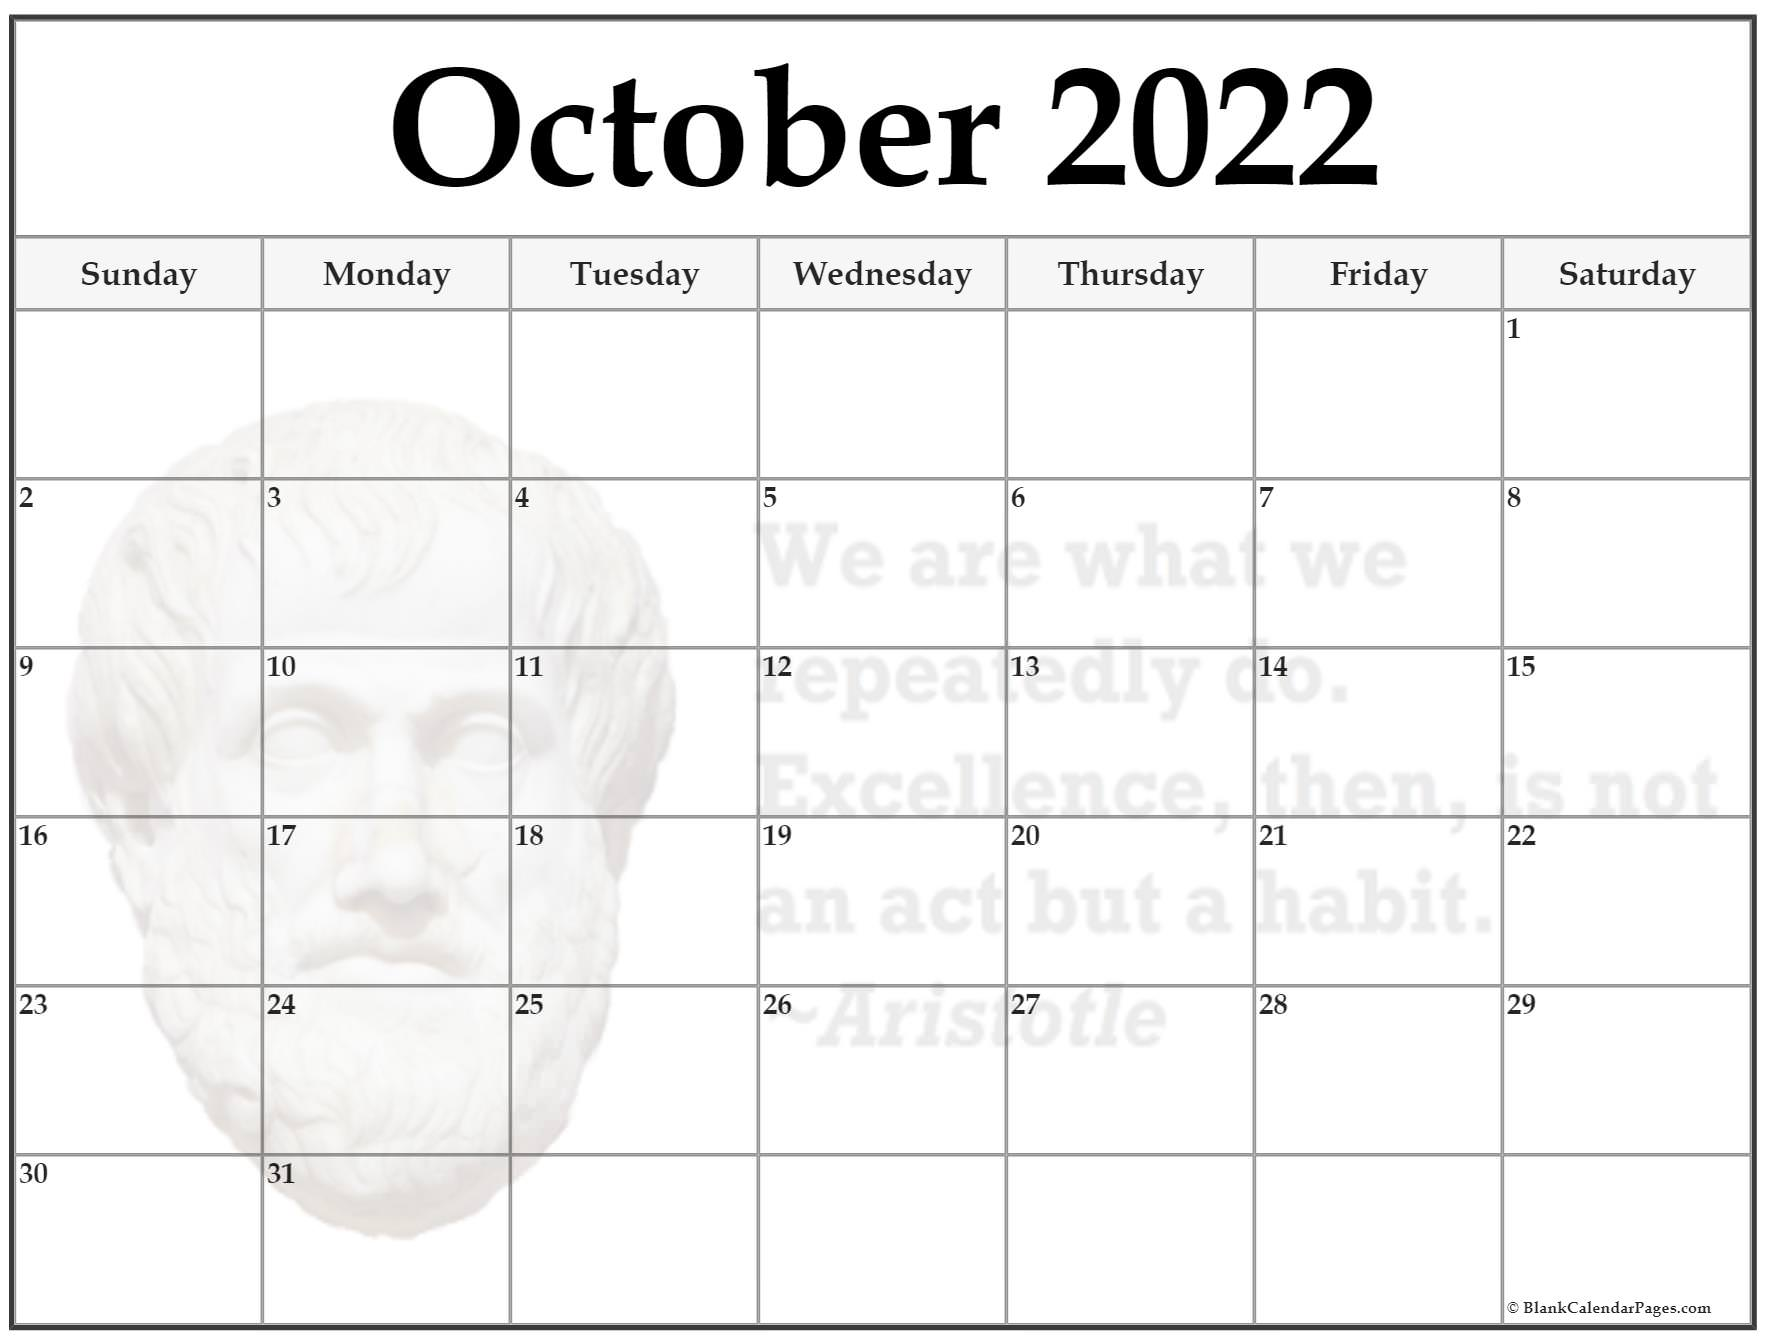 October 2022 Aristotle quote calendar